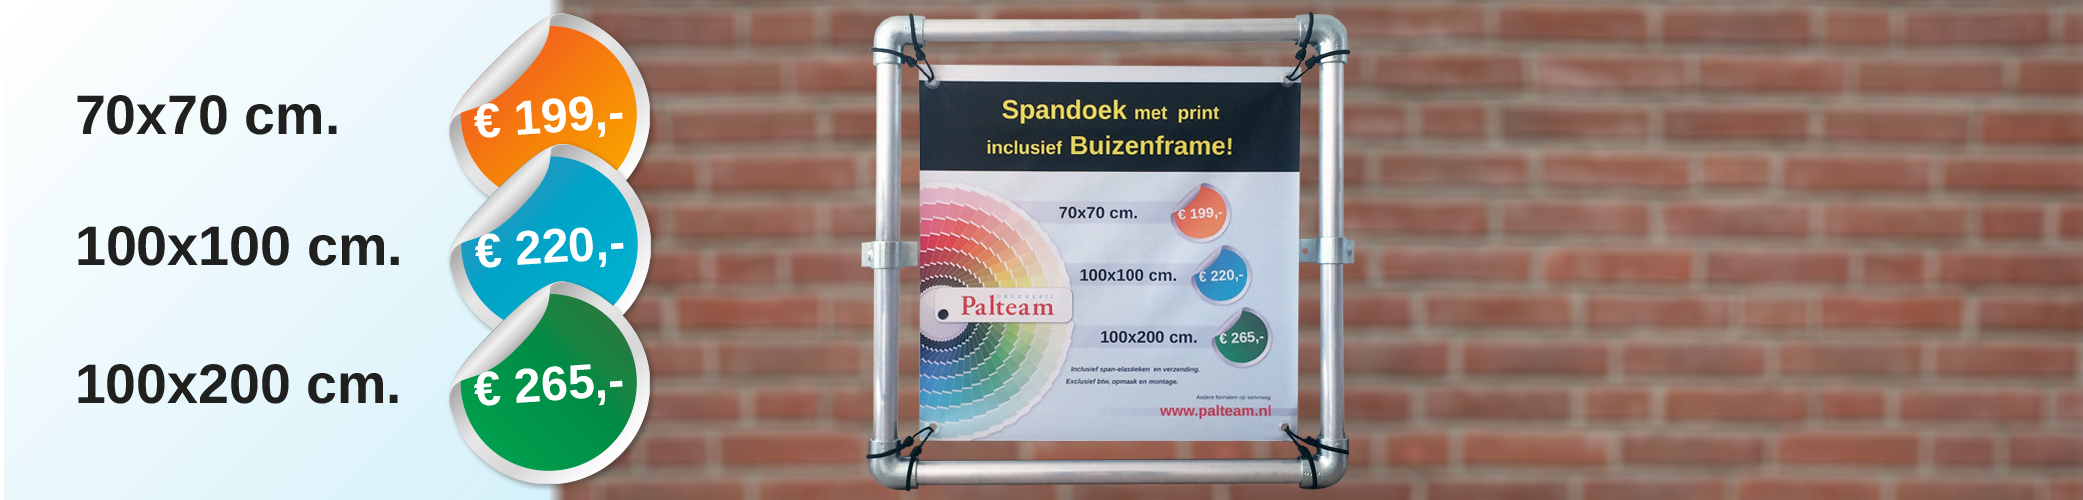 Spandoek in buizenframe!